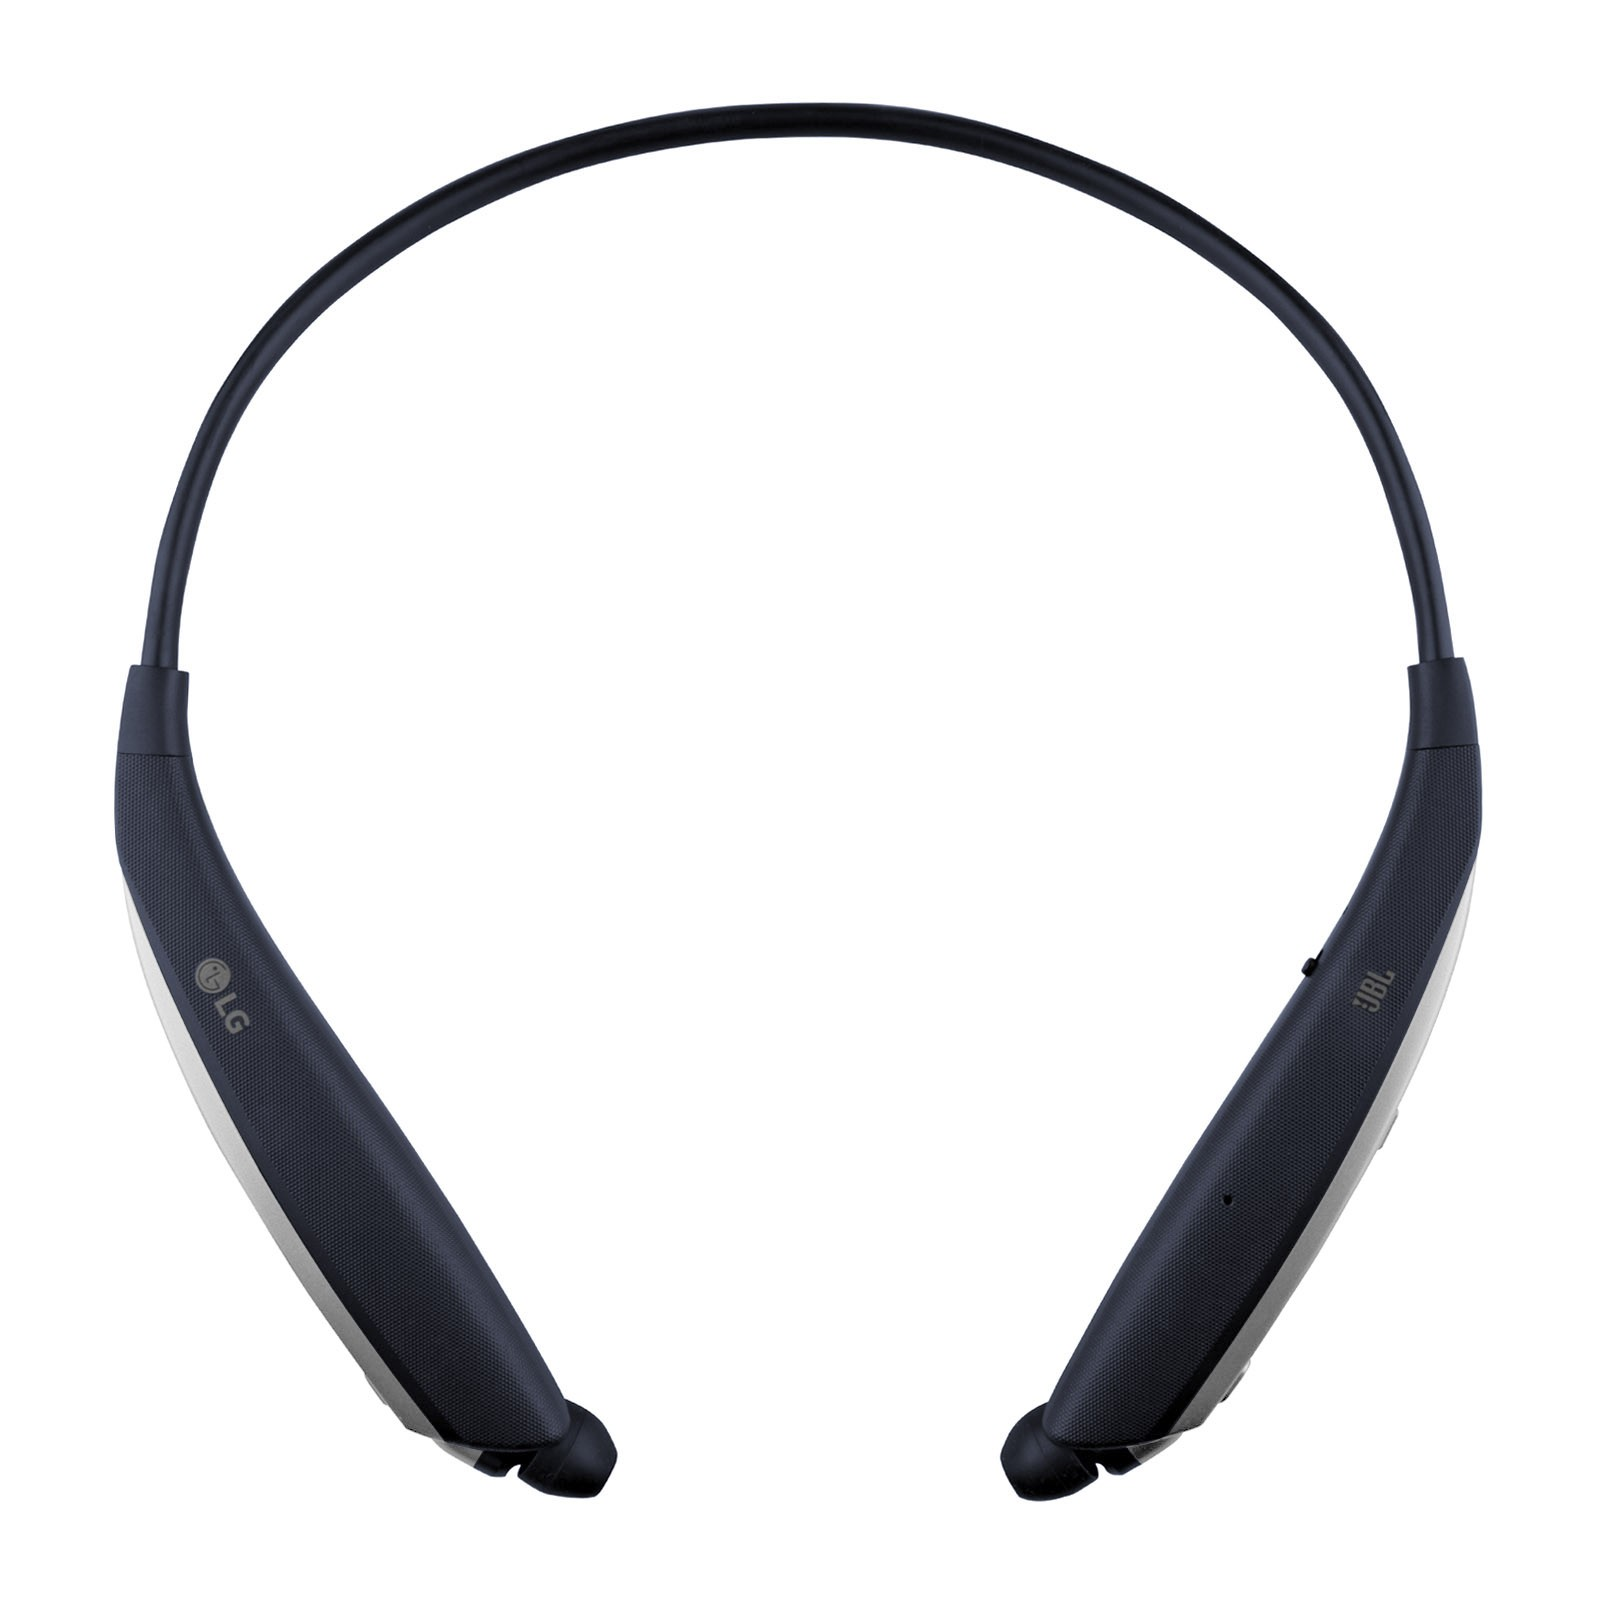 Headphones wireless lg - wireless headphones Wyoming